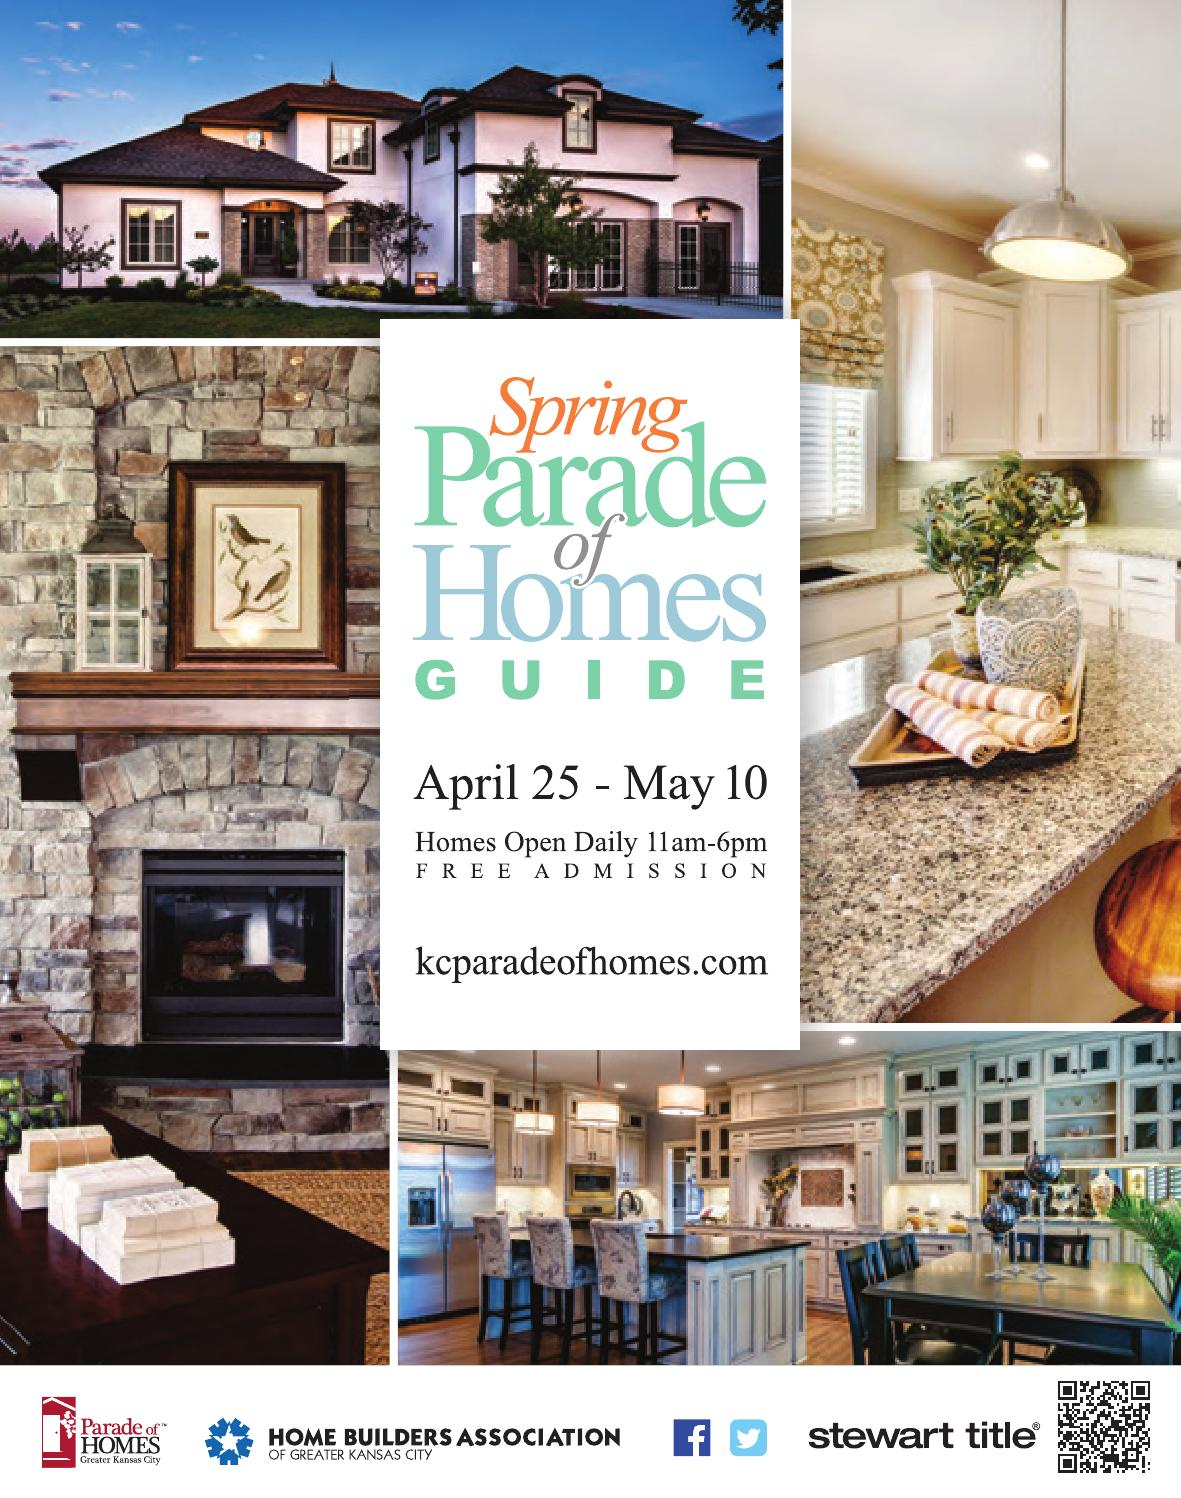 Parade Of Homes Guide Spring 2015 By Home Builders Association Greater Kansas City